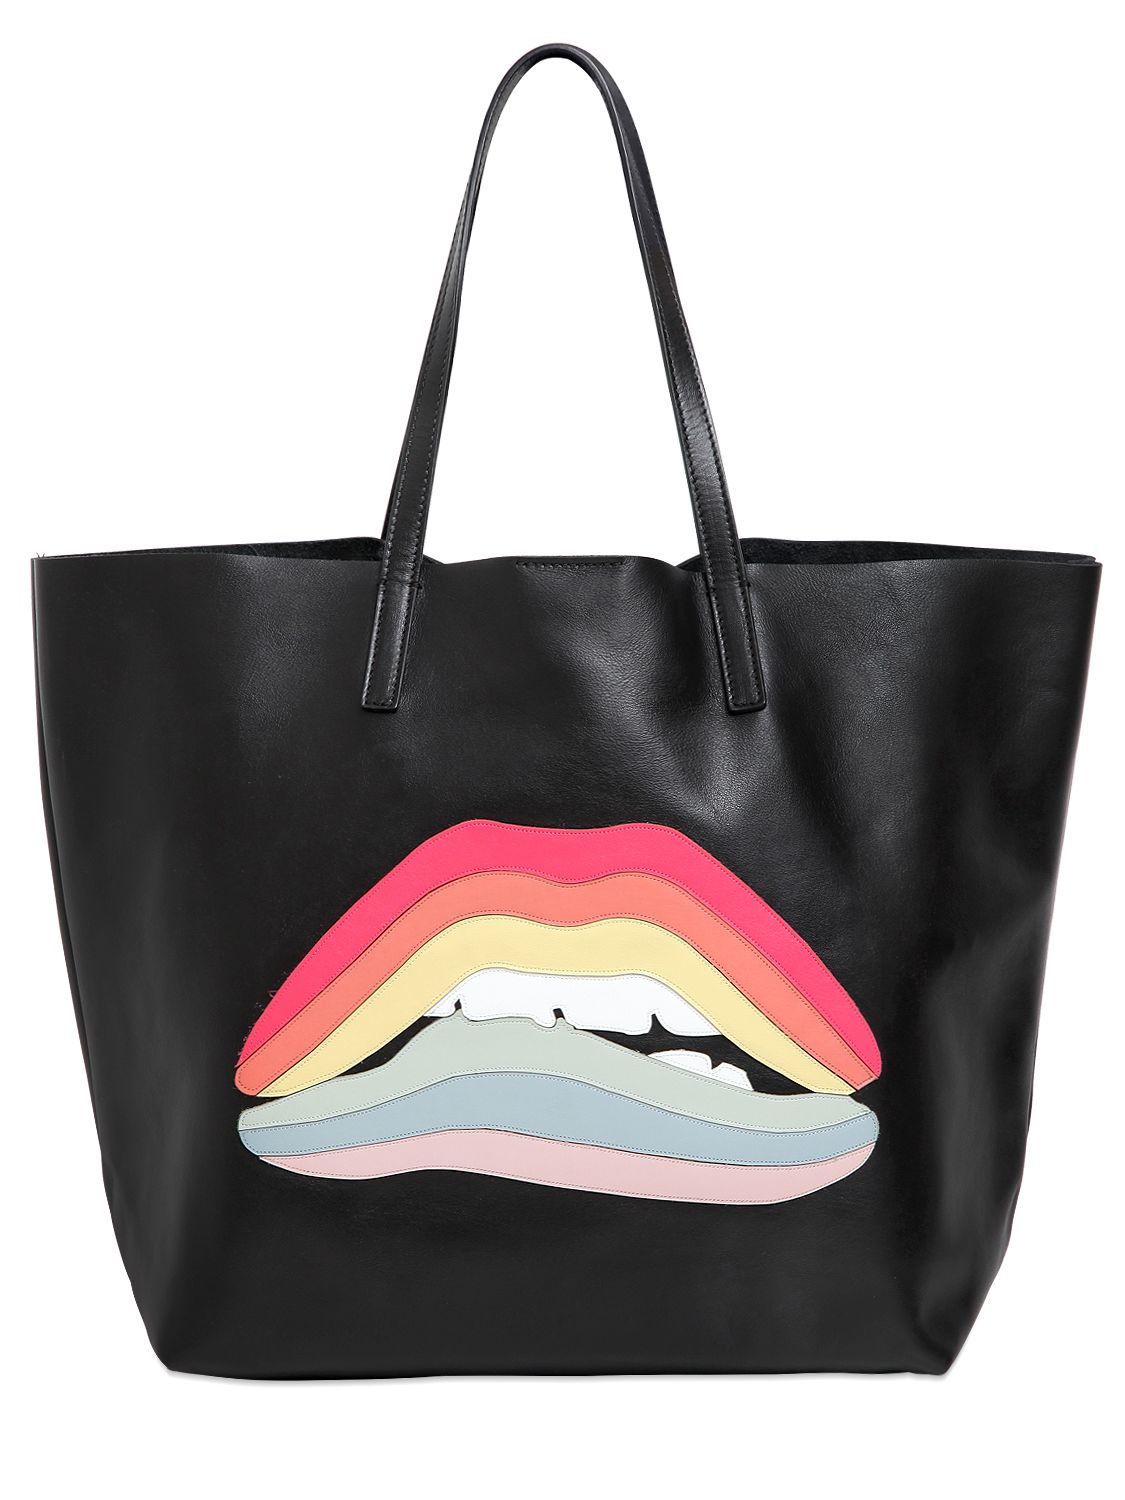 3a07fb0c8b71 RED Valentino Black Rainbow Lips Patch Leather Top Handle